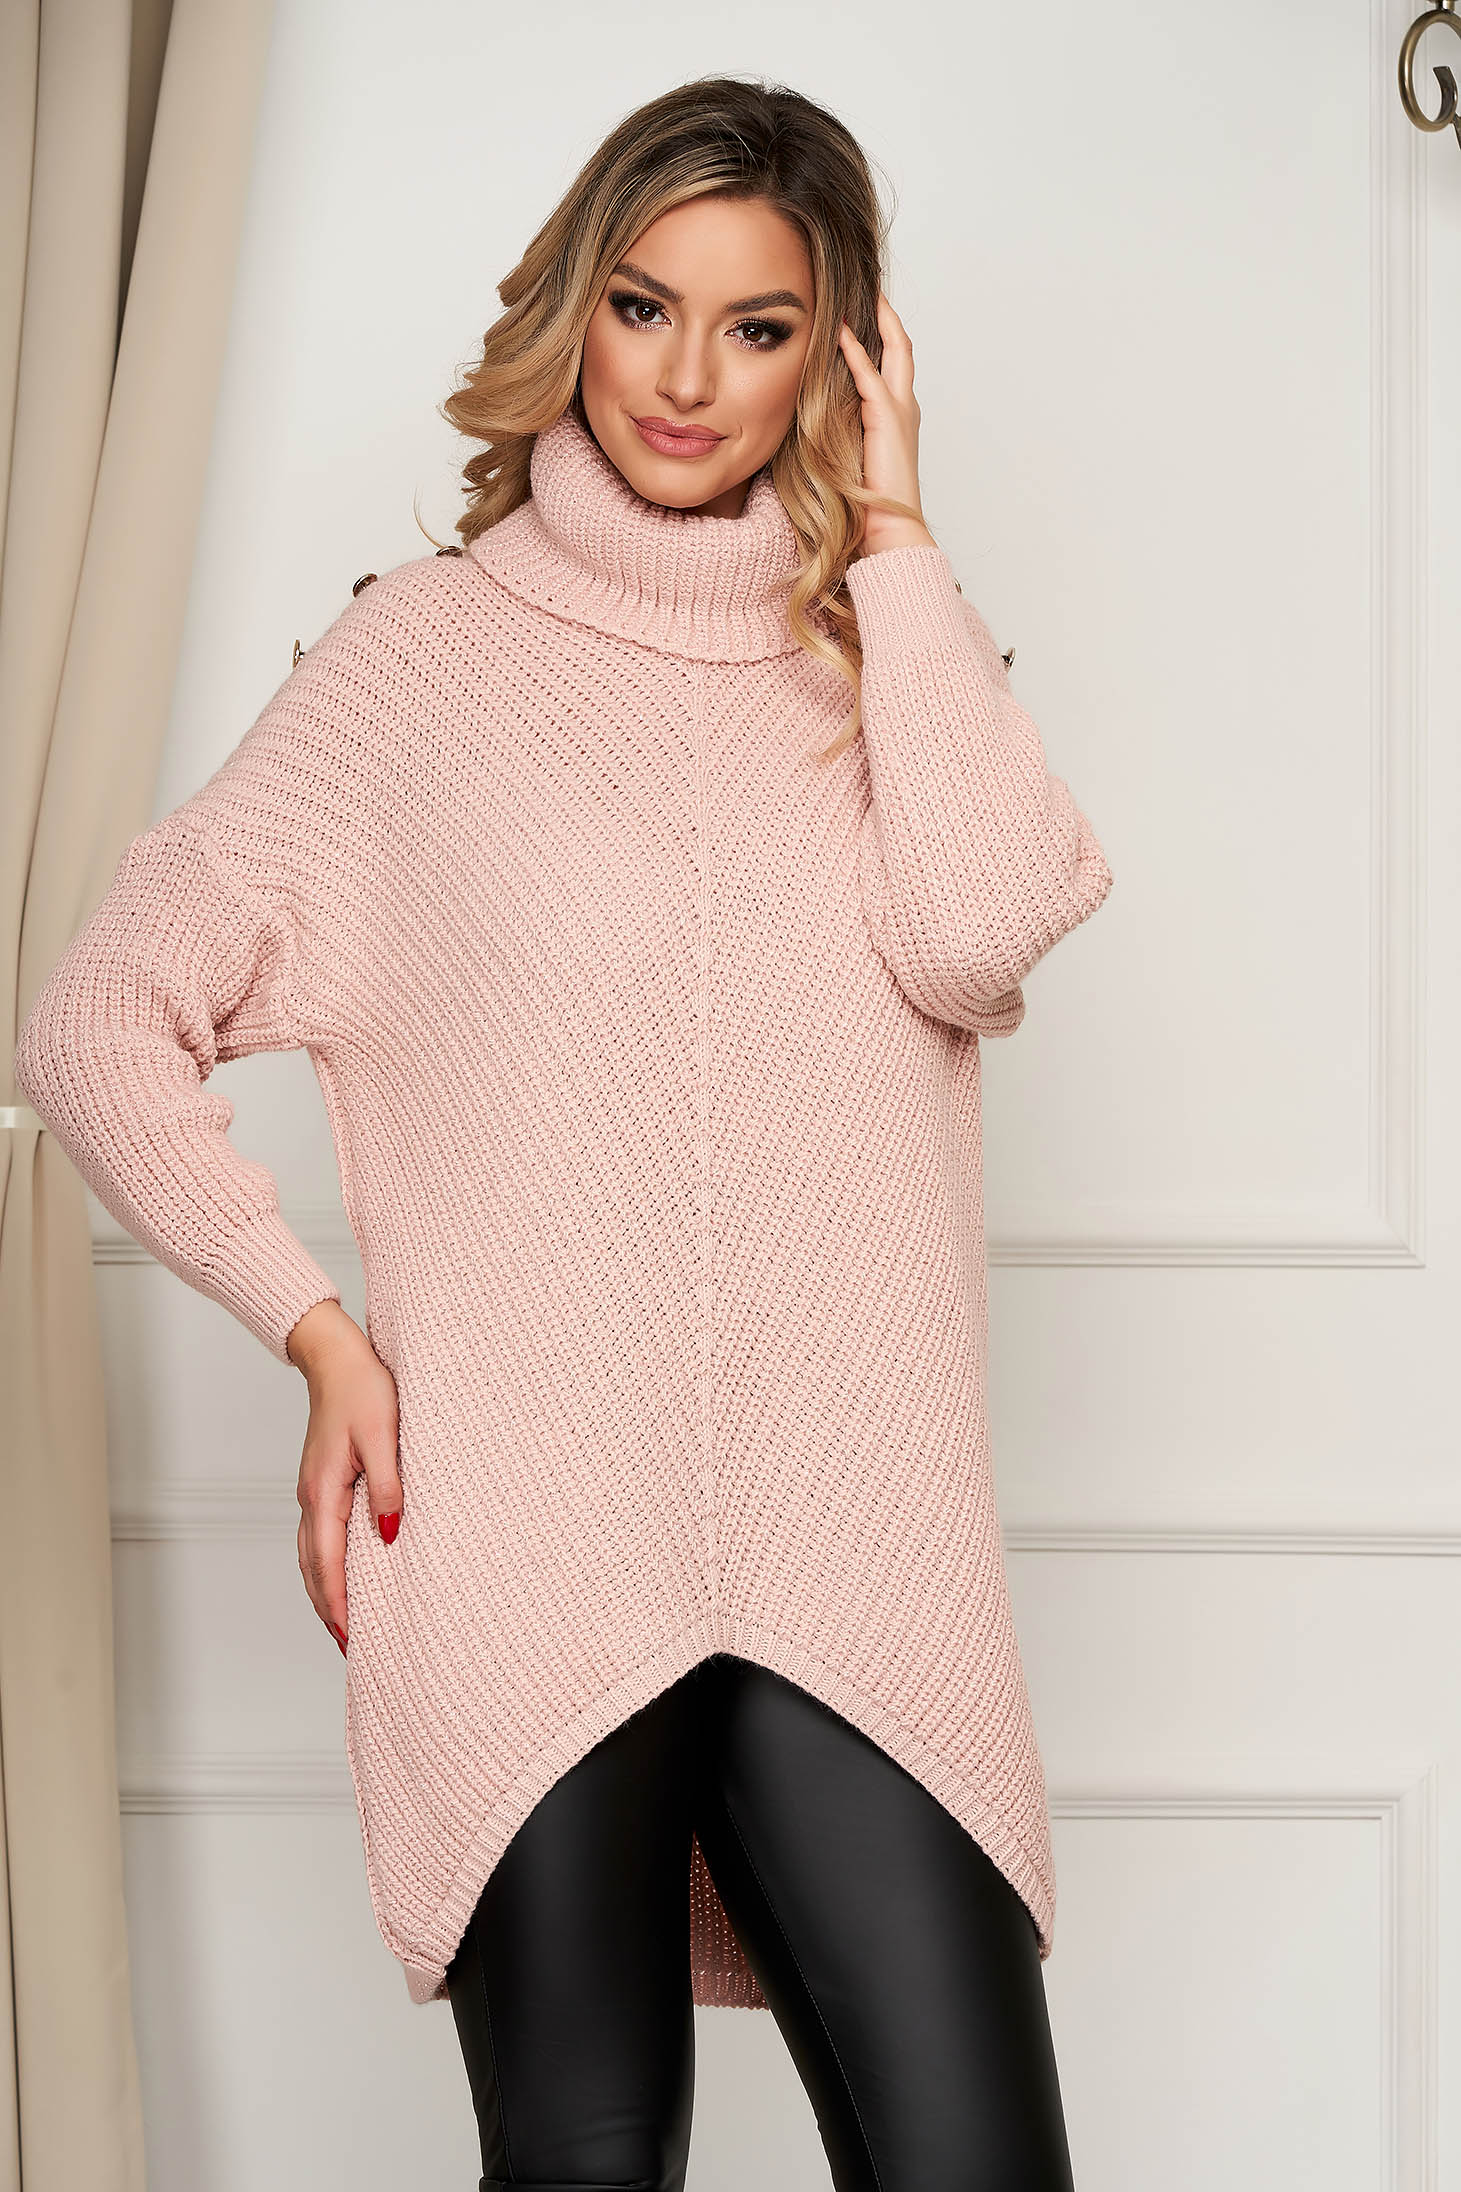 Lightpink sweater knitted with turtle neck asymmetrical with button accessories